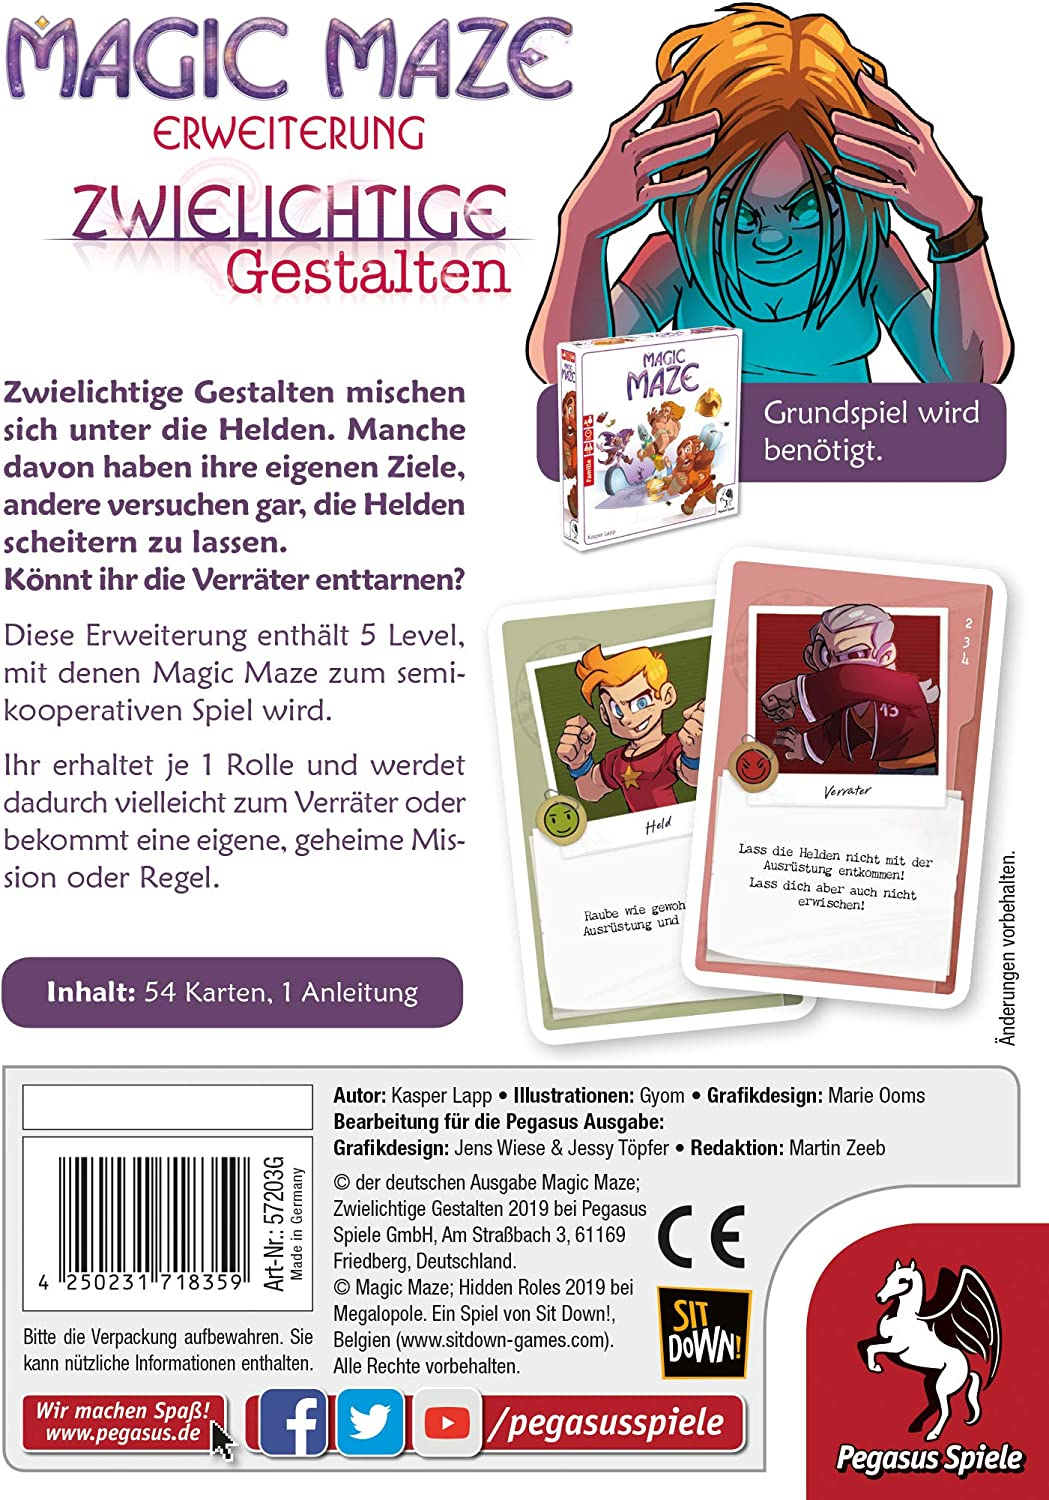 PEG Magic Maze Zwielichtige Gesta. Erwei | 57203G: Amazon.es: Juguetes y juegos